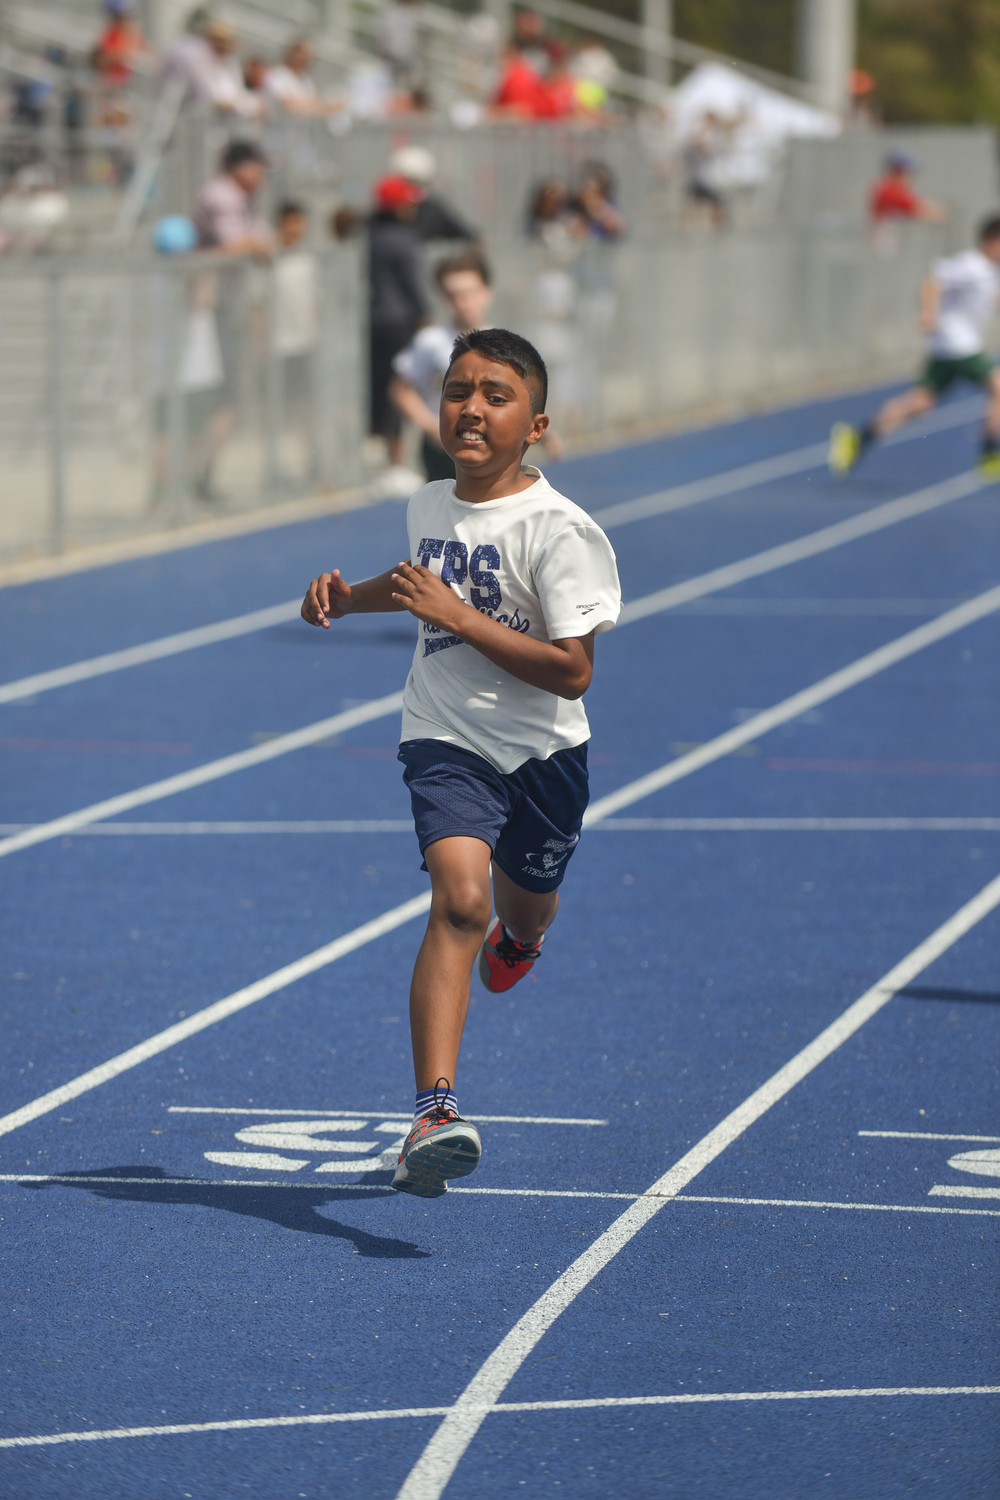 Track and FIeld - Ching 2015 - U10 (6 of 9).jpg